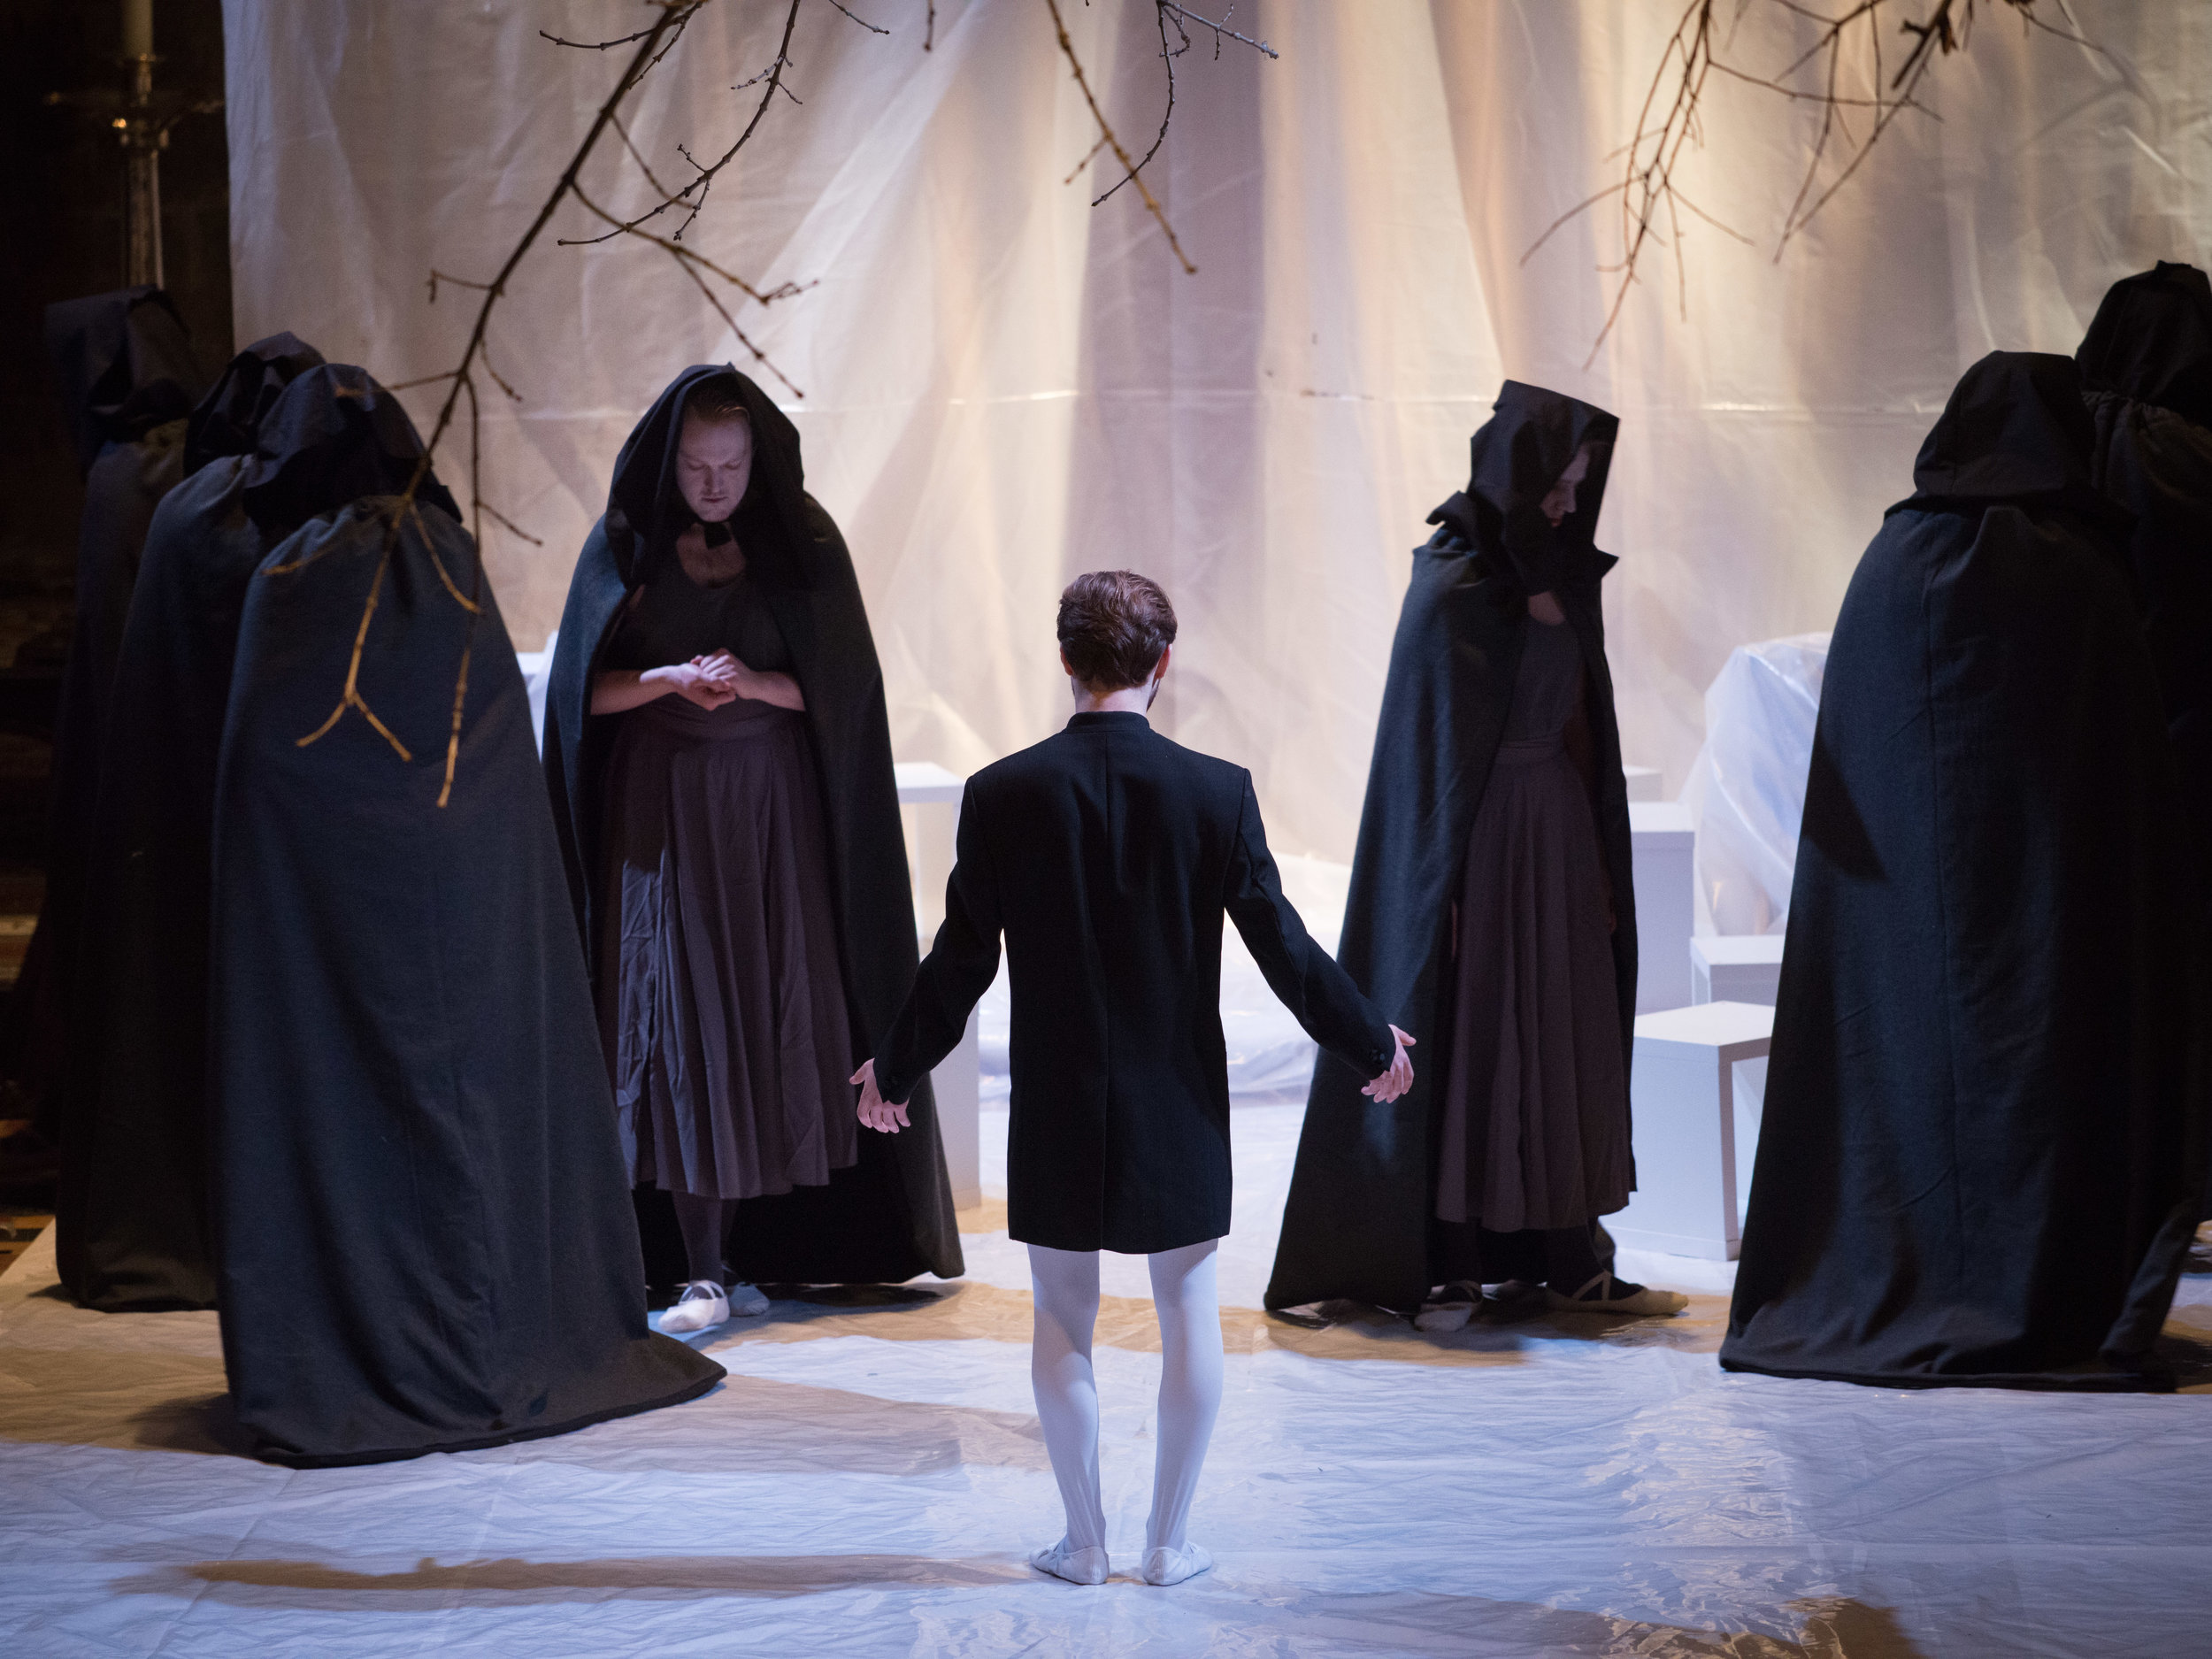 """What they said - """"Atmospheric and sensitively performed, its emotional impact was out of proportion to its scale."""" – Richard Bratby, The Spectator""""A beautiful, dedicated and moving production""""– Rupert Christiansen, Opera Critic for The Telegraph"""